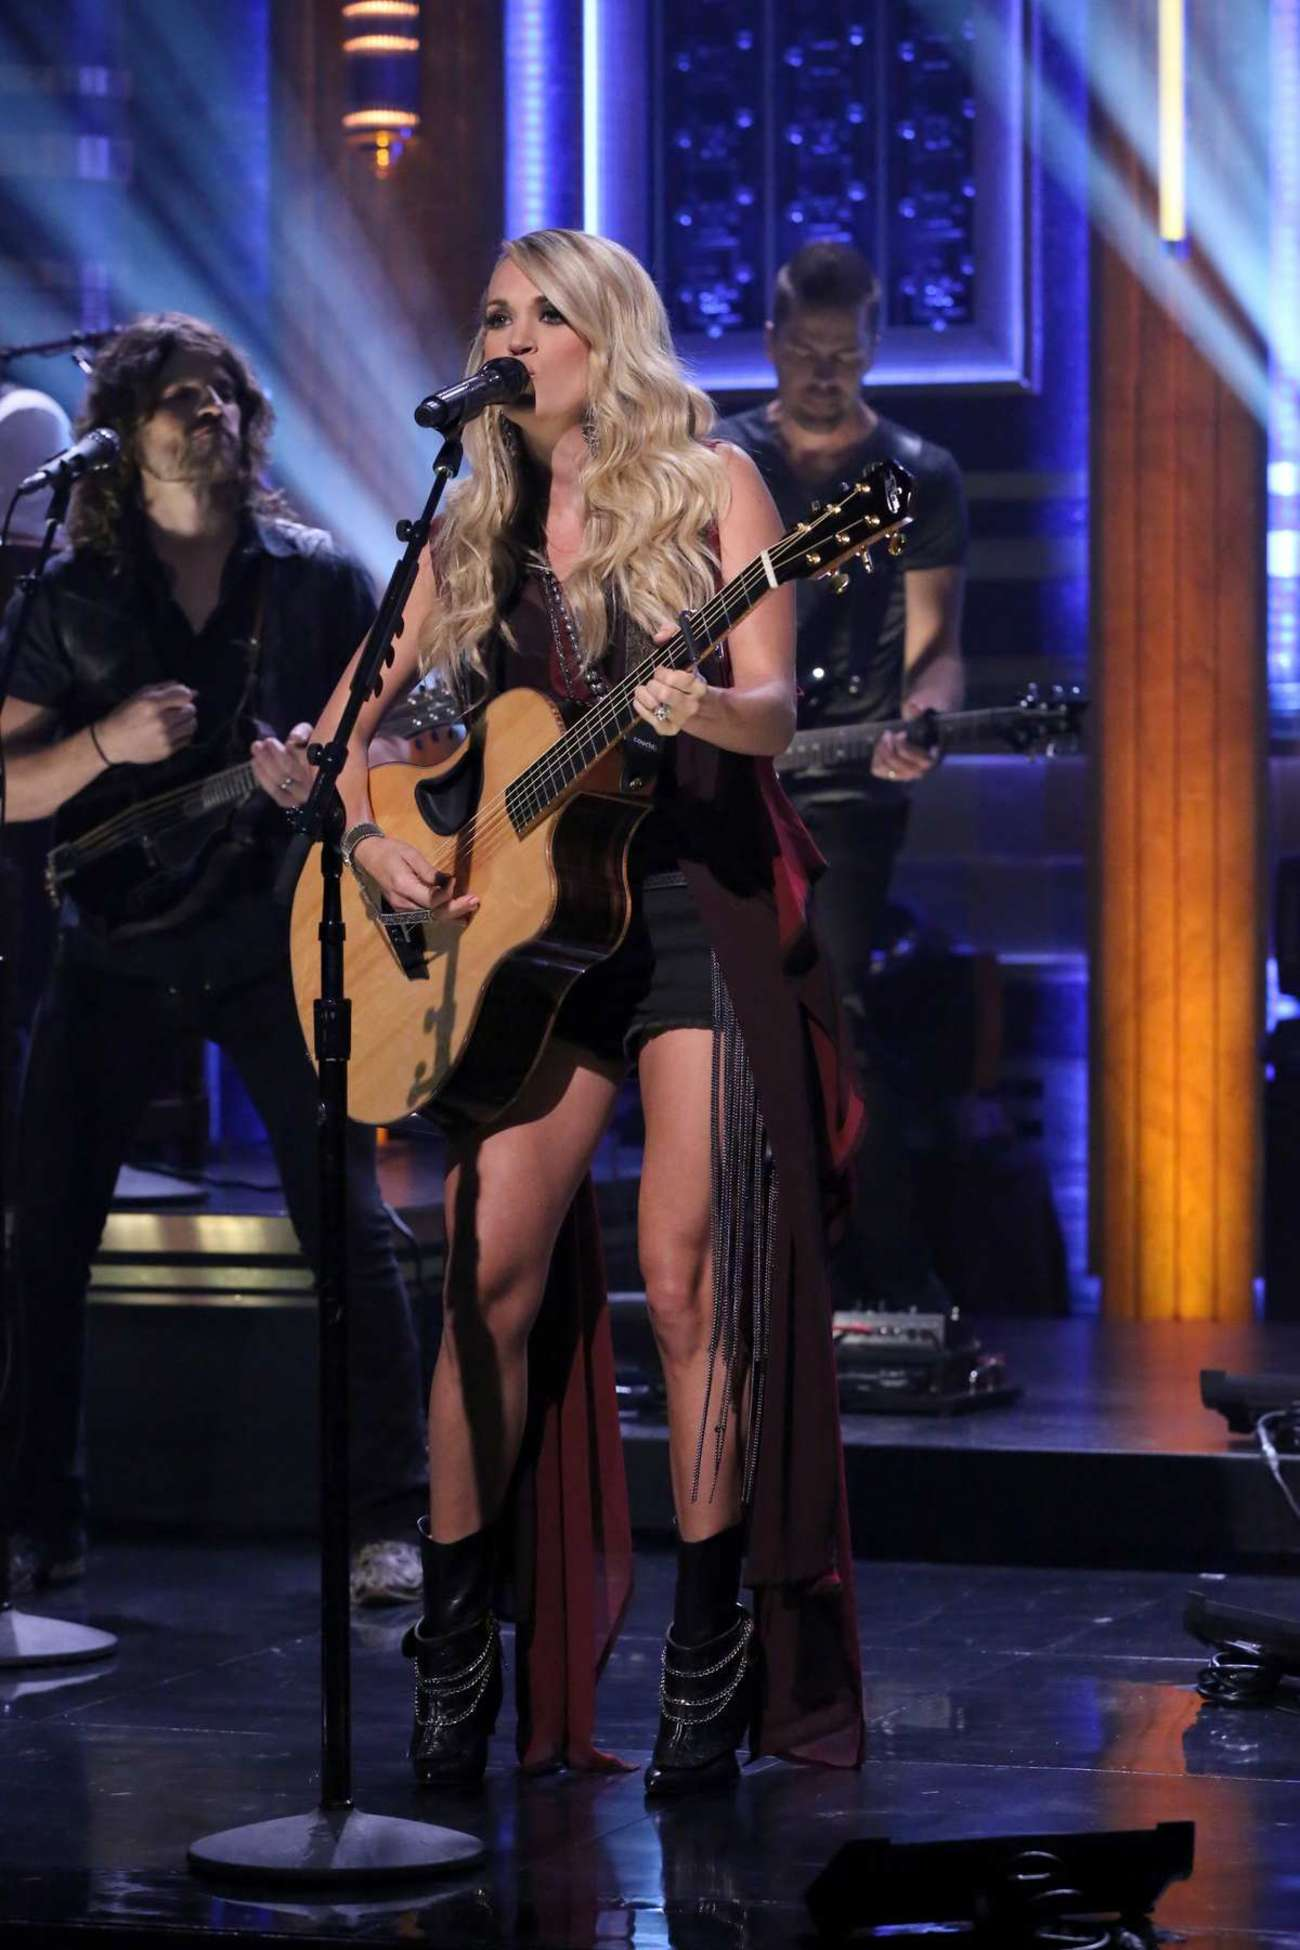 Carrie Underwood 2015 : Carrie Underwood: The Tonight Show Starring Jimmy Fallon -03